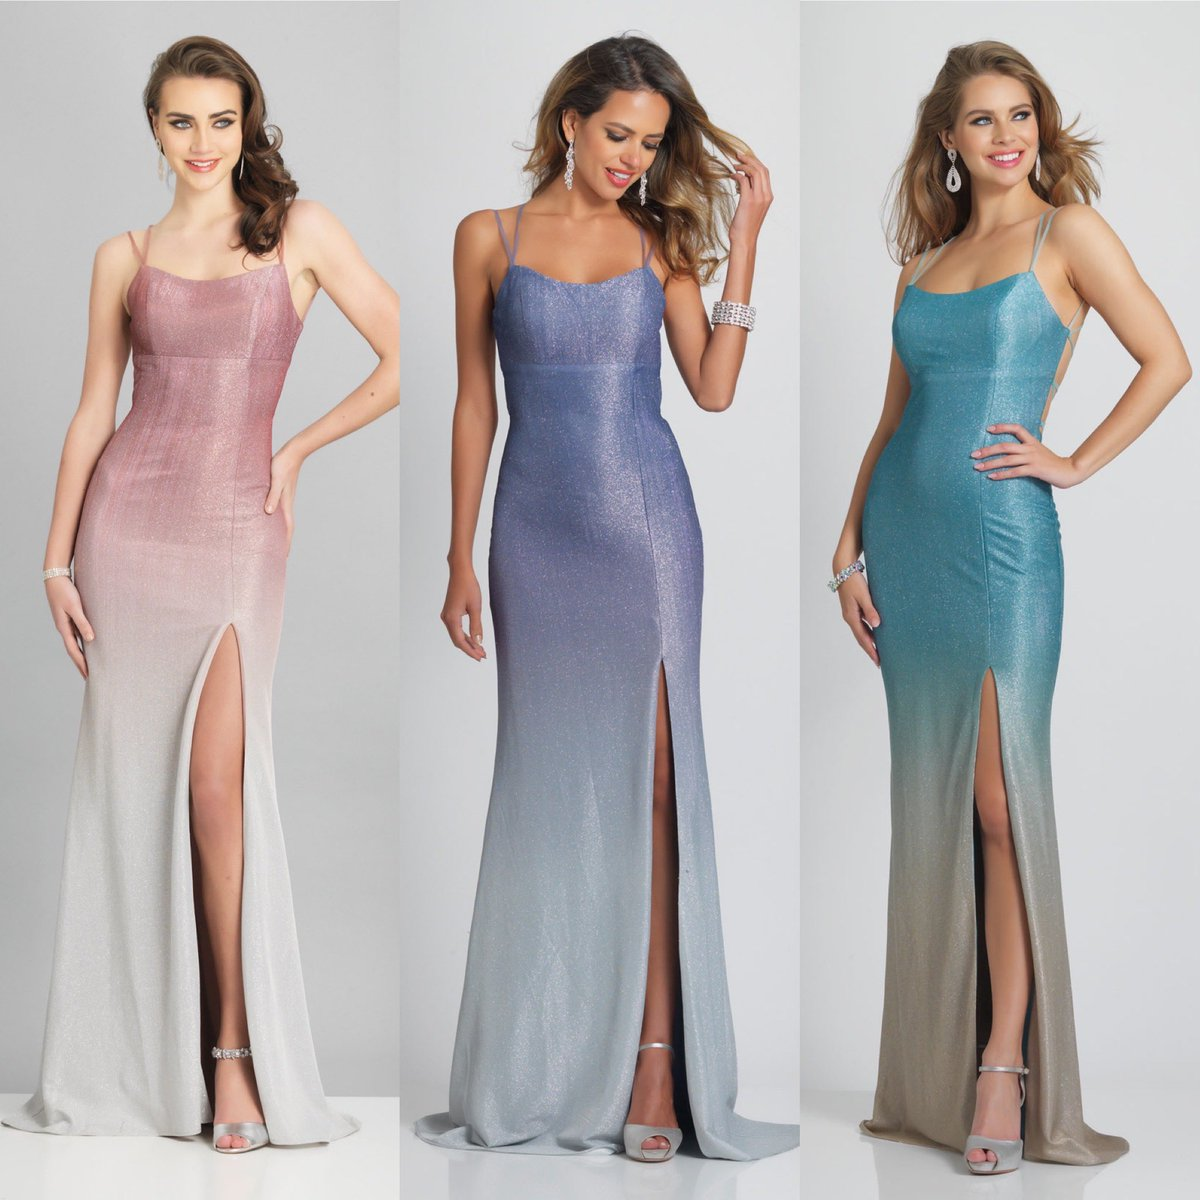 What's your favorite color? Rose, Purple or Teal? {a8358} . . . .   #onlineshopping #onlineboutique #daveandjohnny #prom #pretty #details #promseason #details #formal #new #love #spring #designer #dresses #dramatic #event #newyork #manhattandress